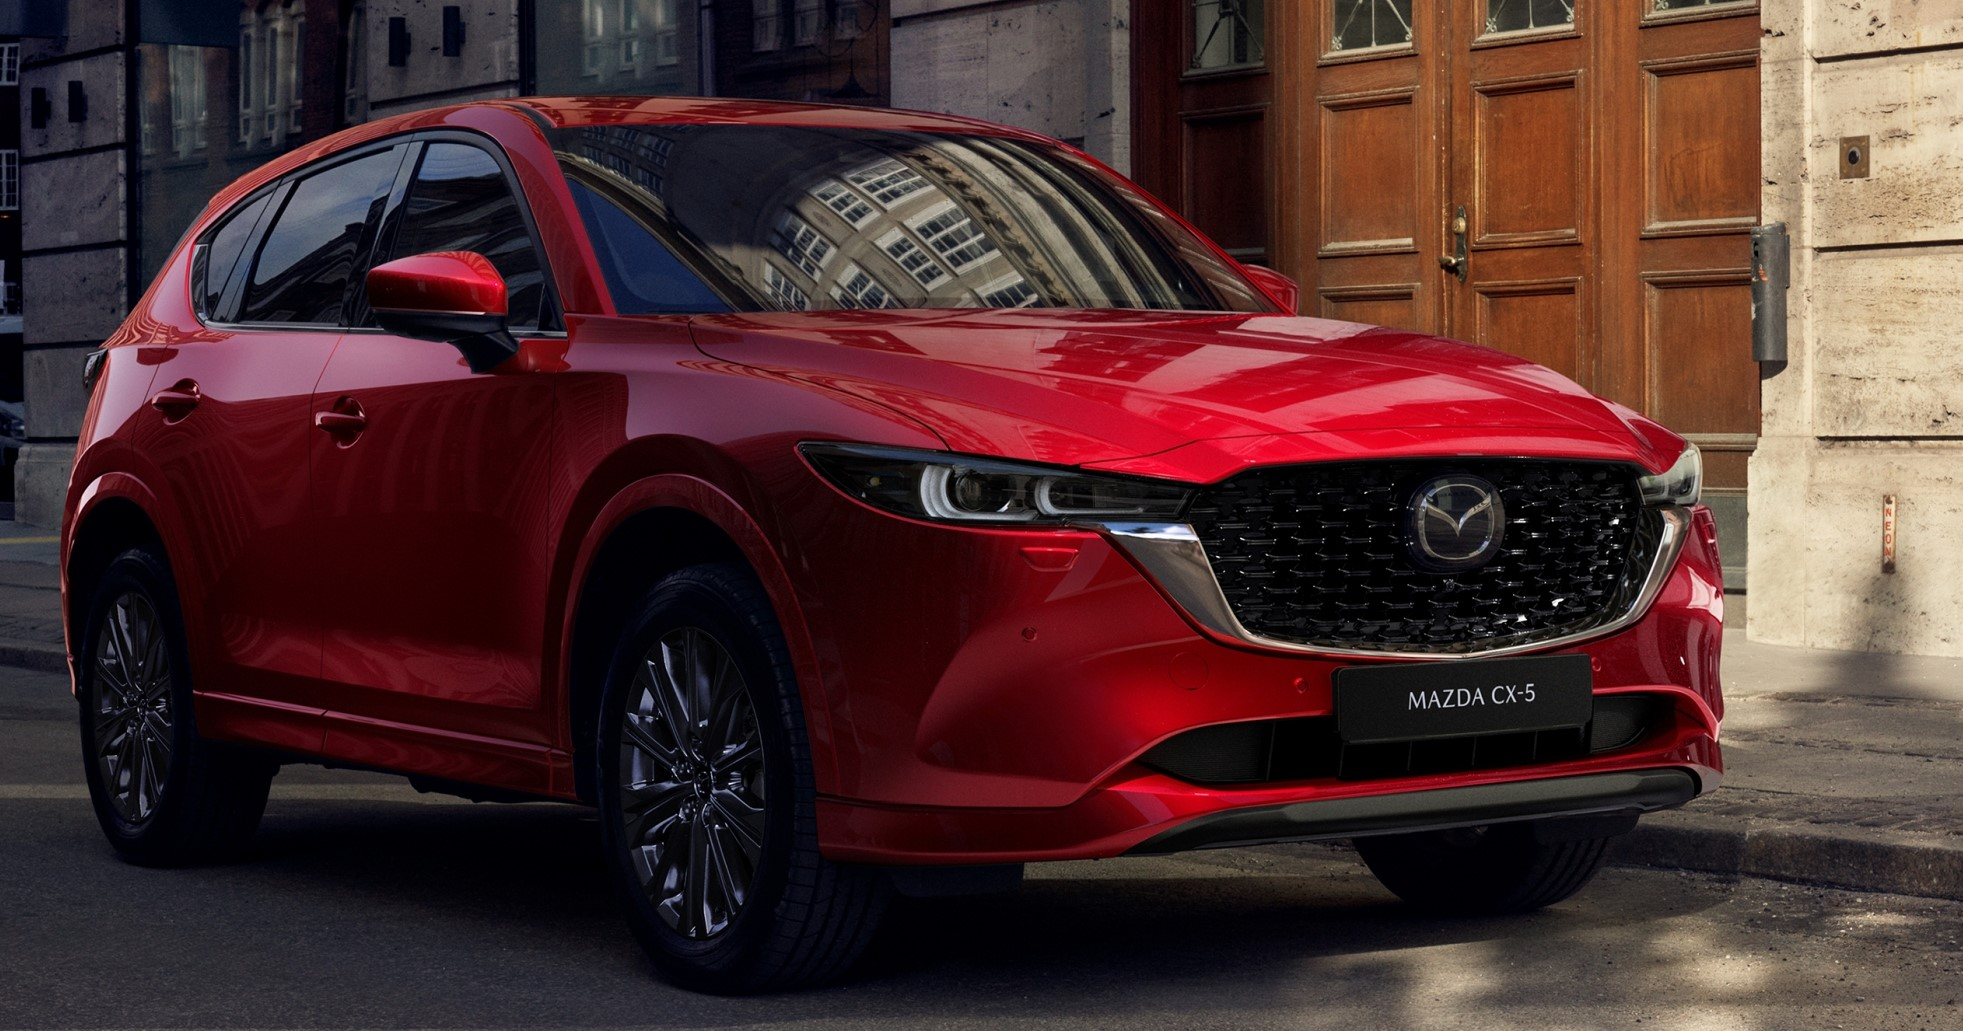 The Mazda CX-5 refresh for 2022 is revealed